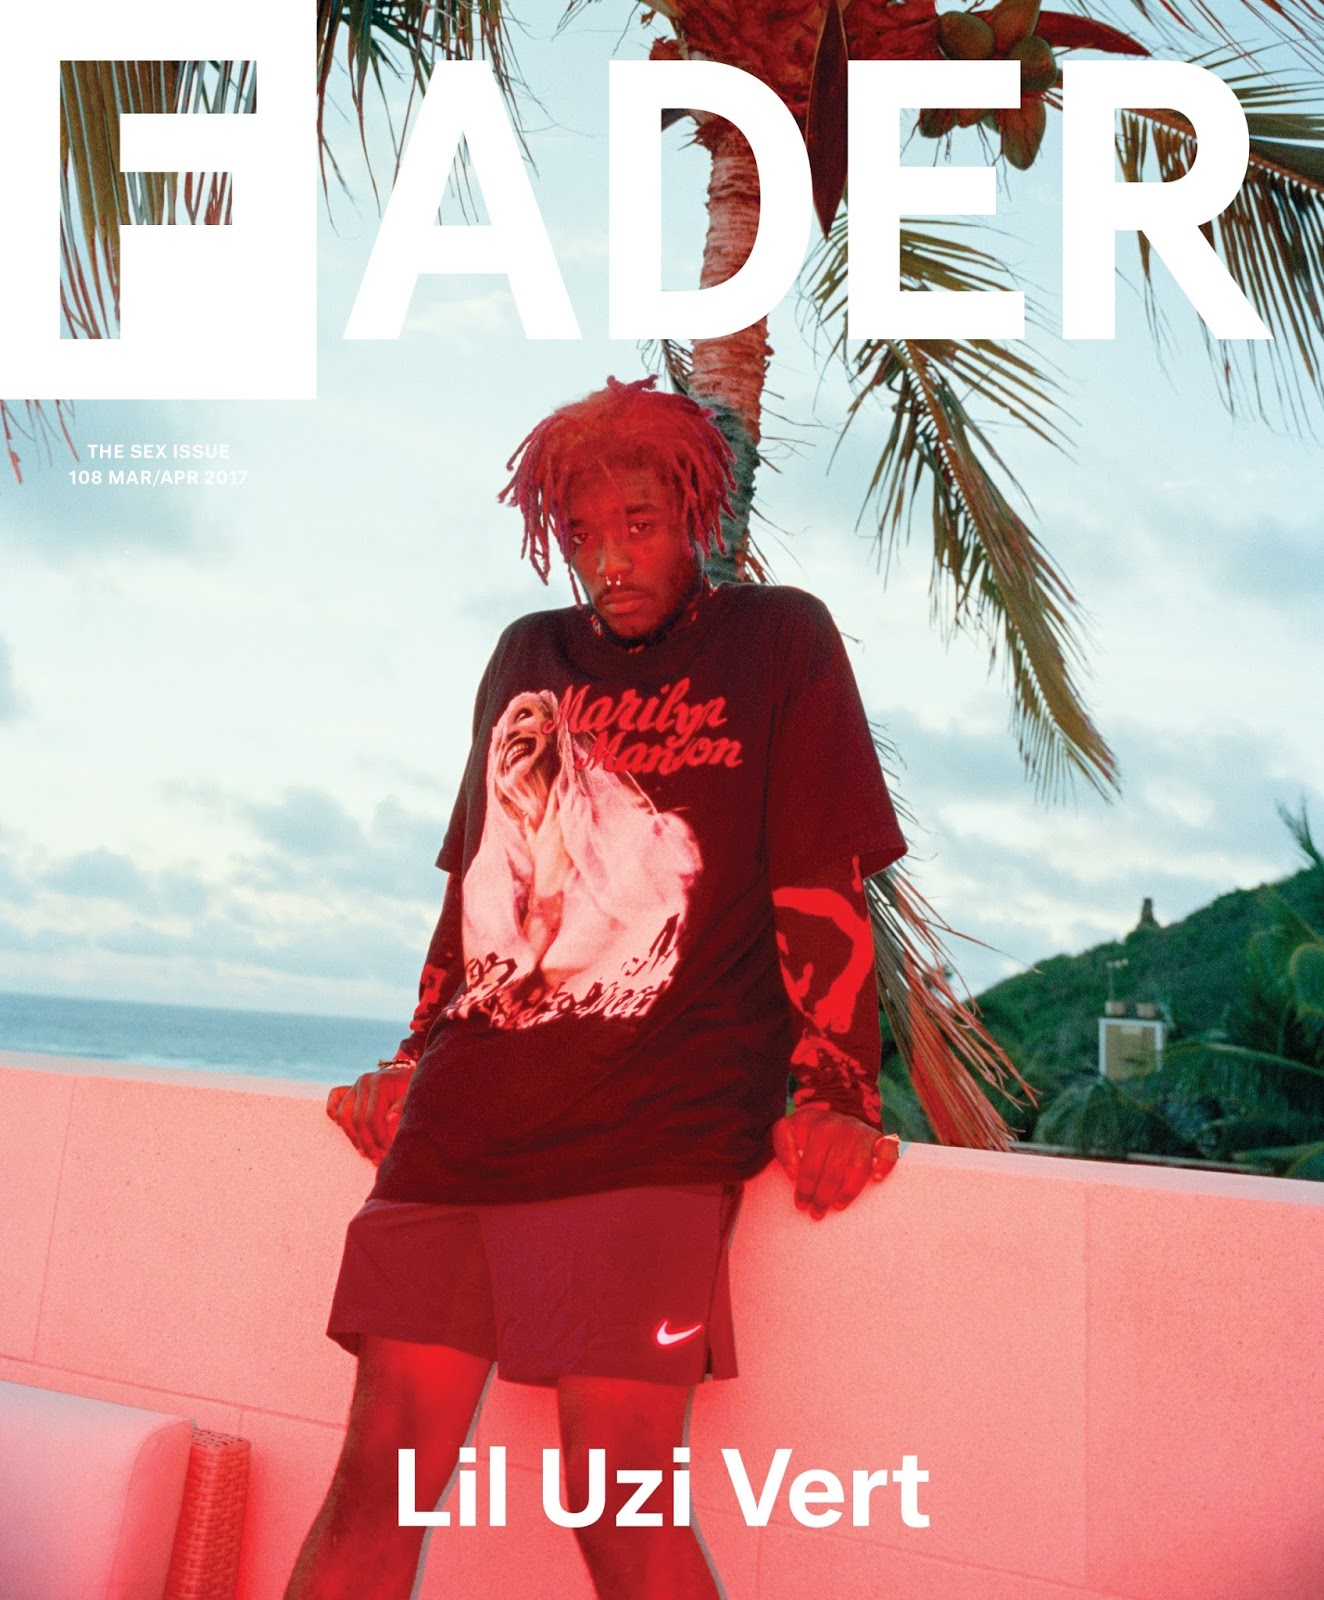 Lil Uzi (@liluzivert) Covers SEX issue of The FADER